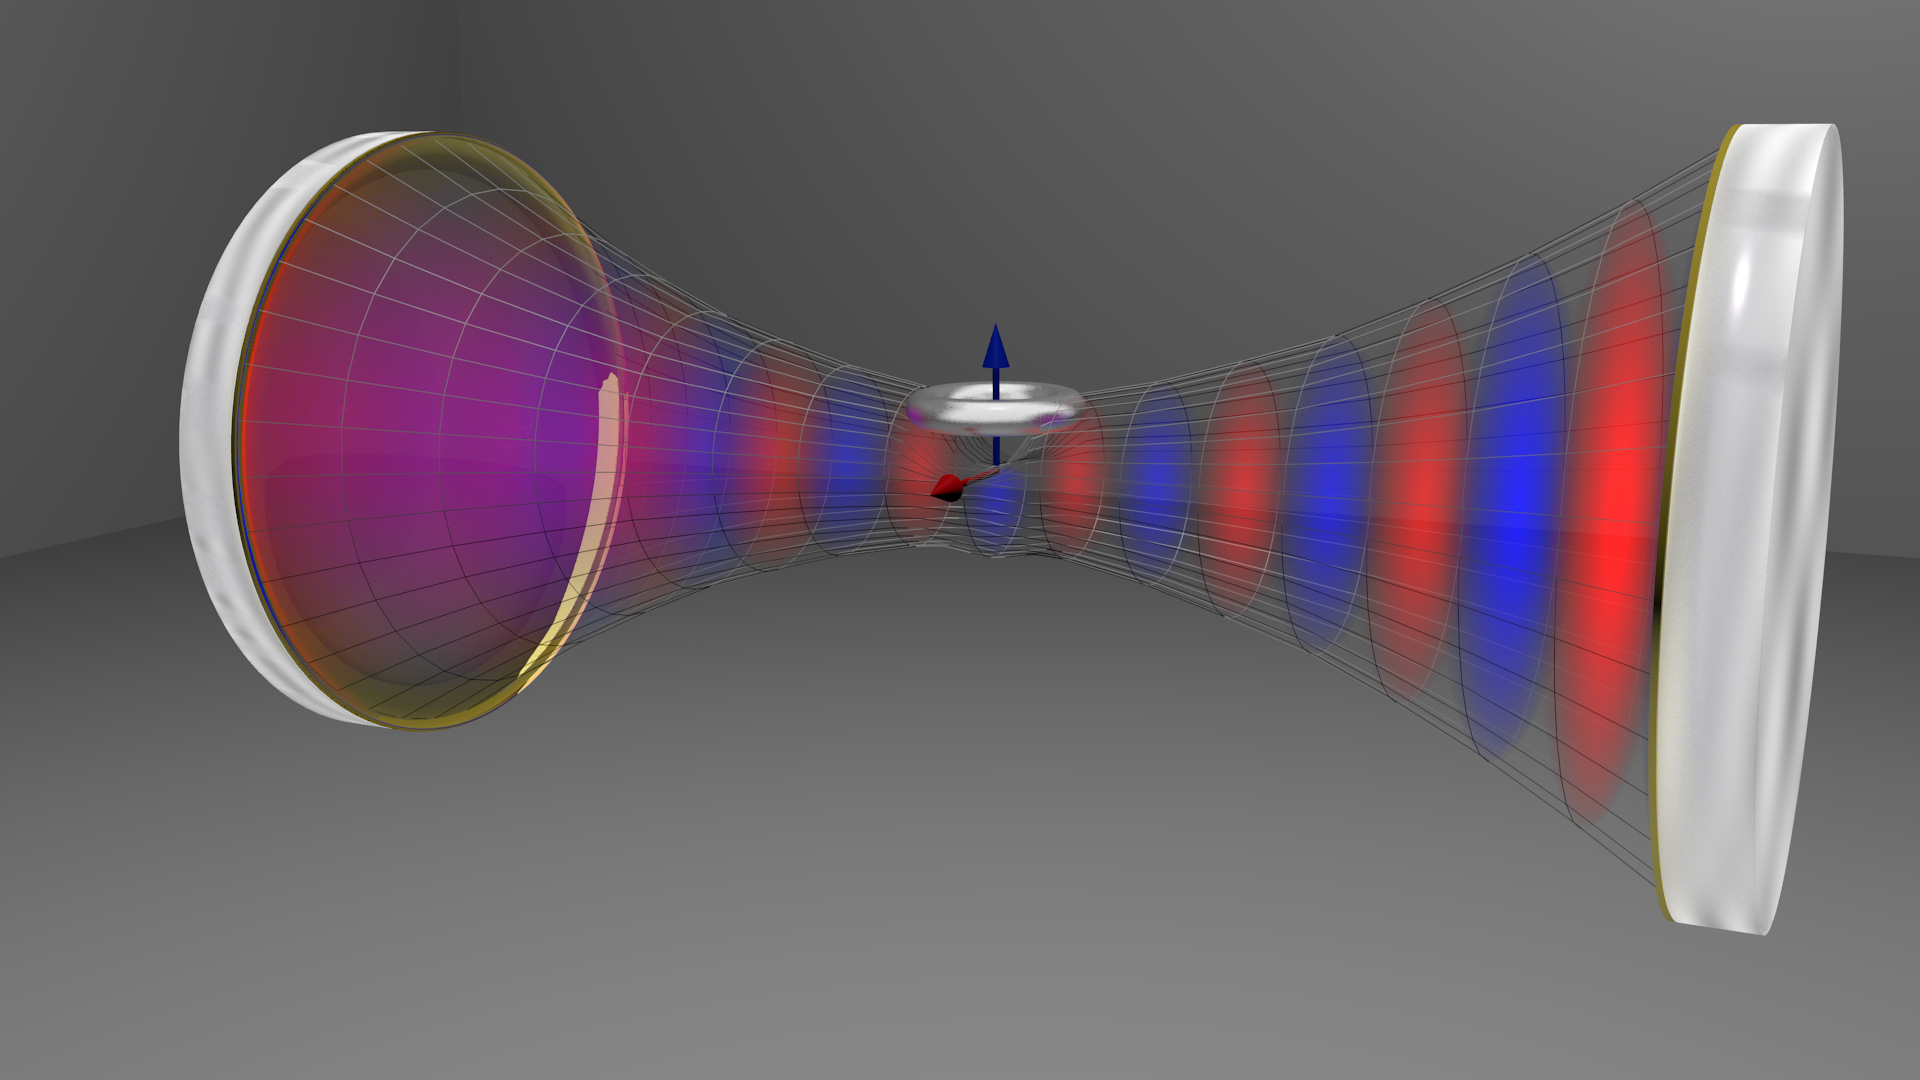 Physics - Focus: Measuring the Magnetism of Light